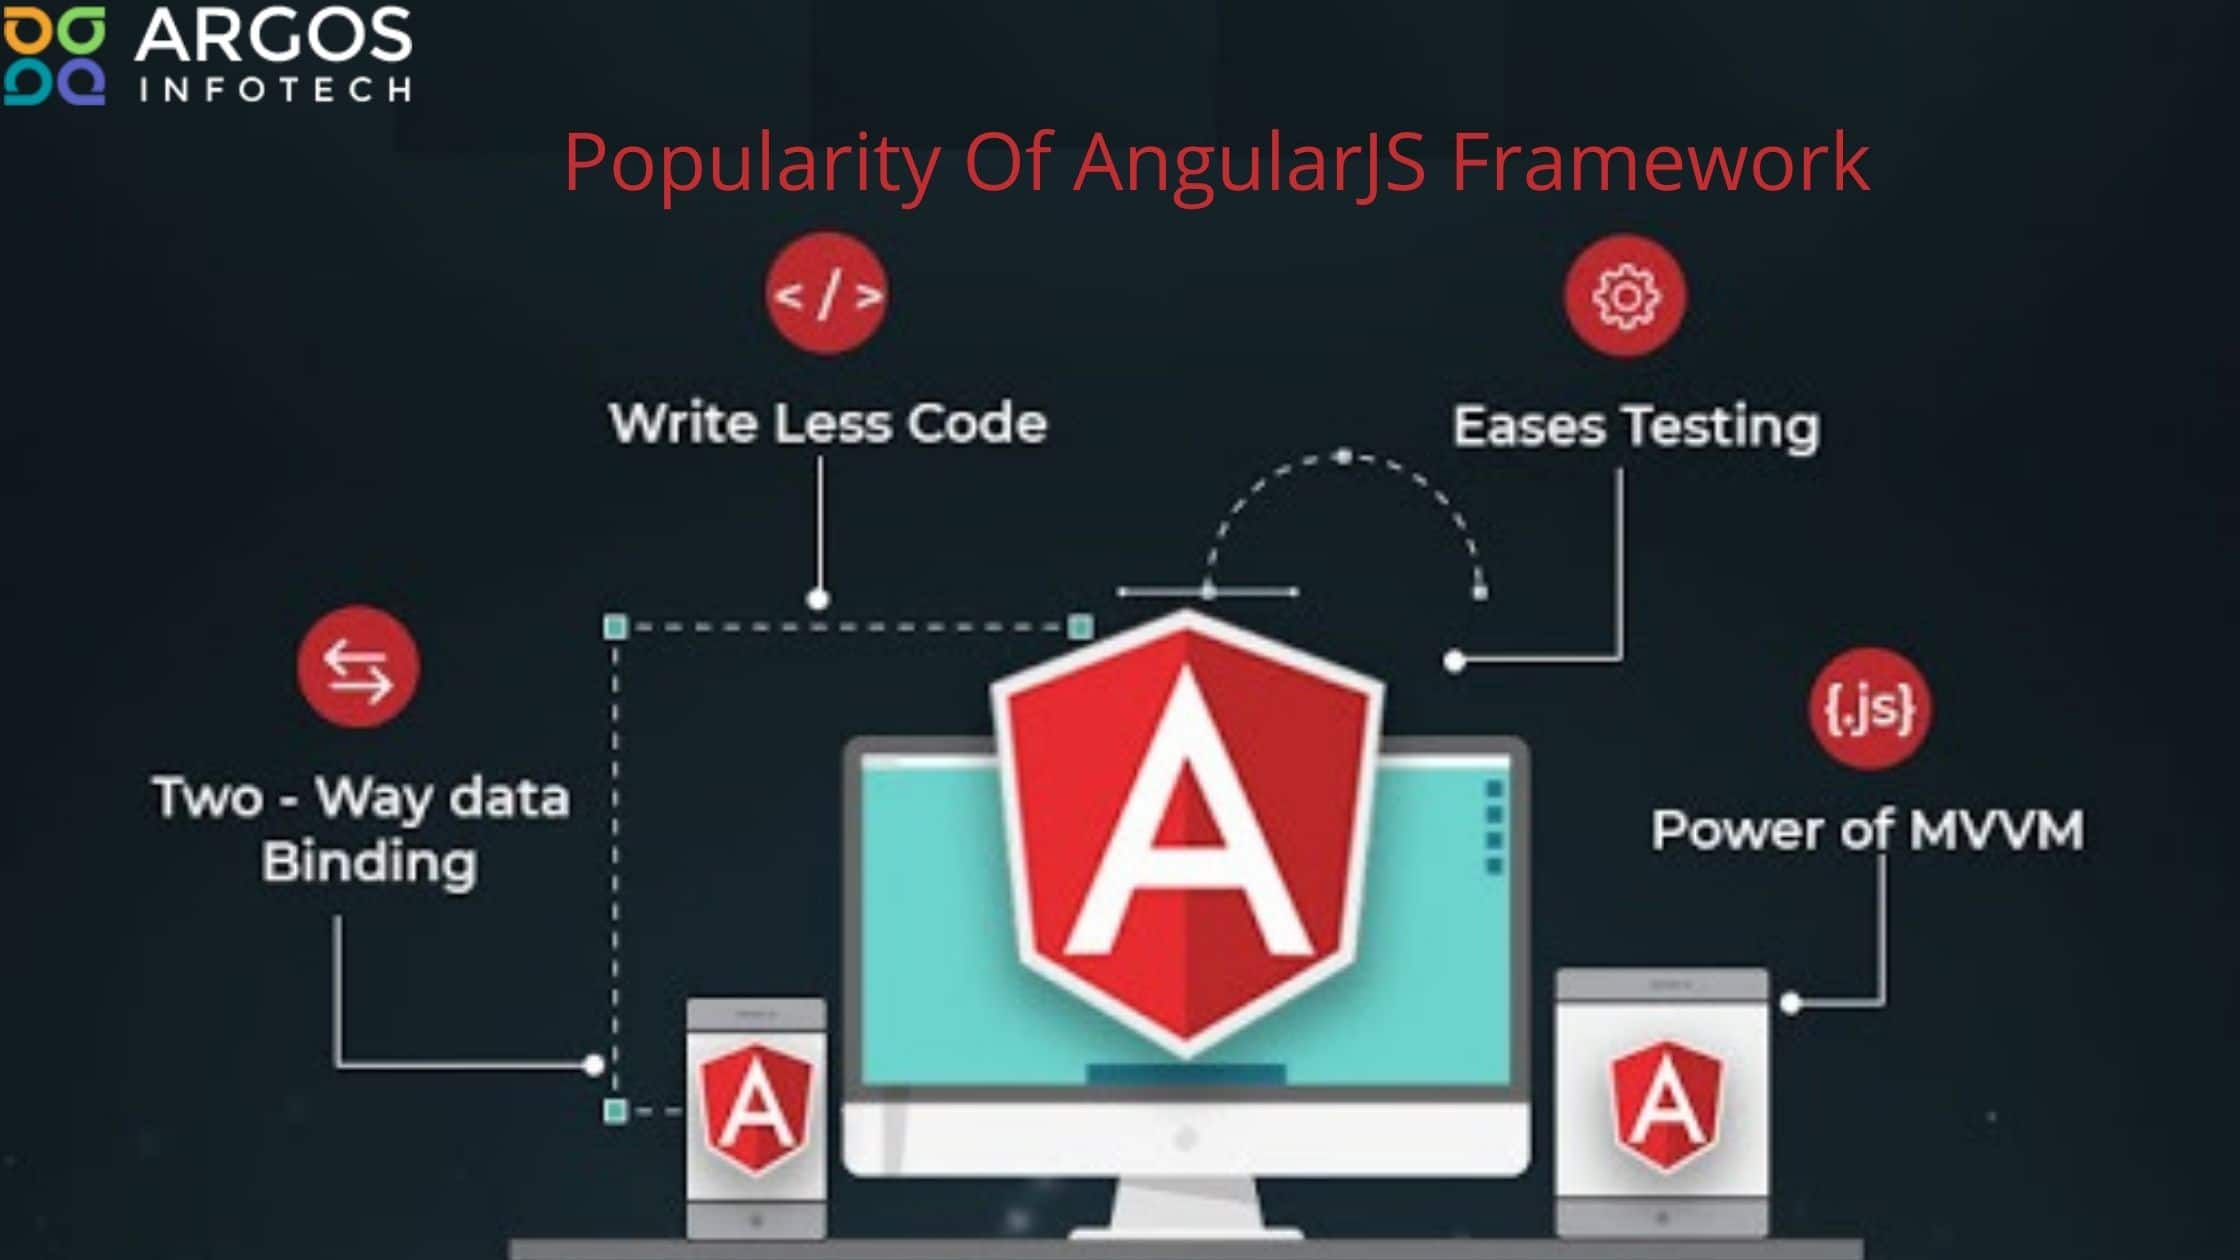 The Reasons Behind The Popularity Of AngularJS Framework